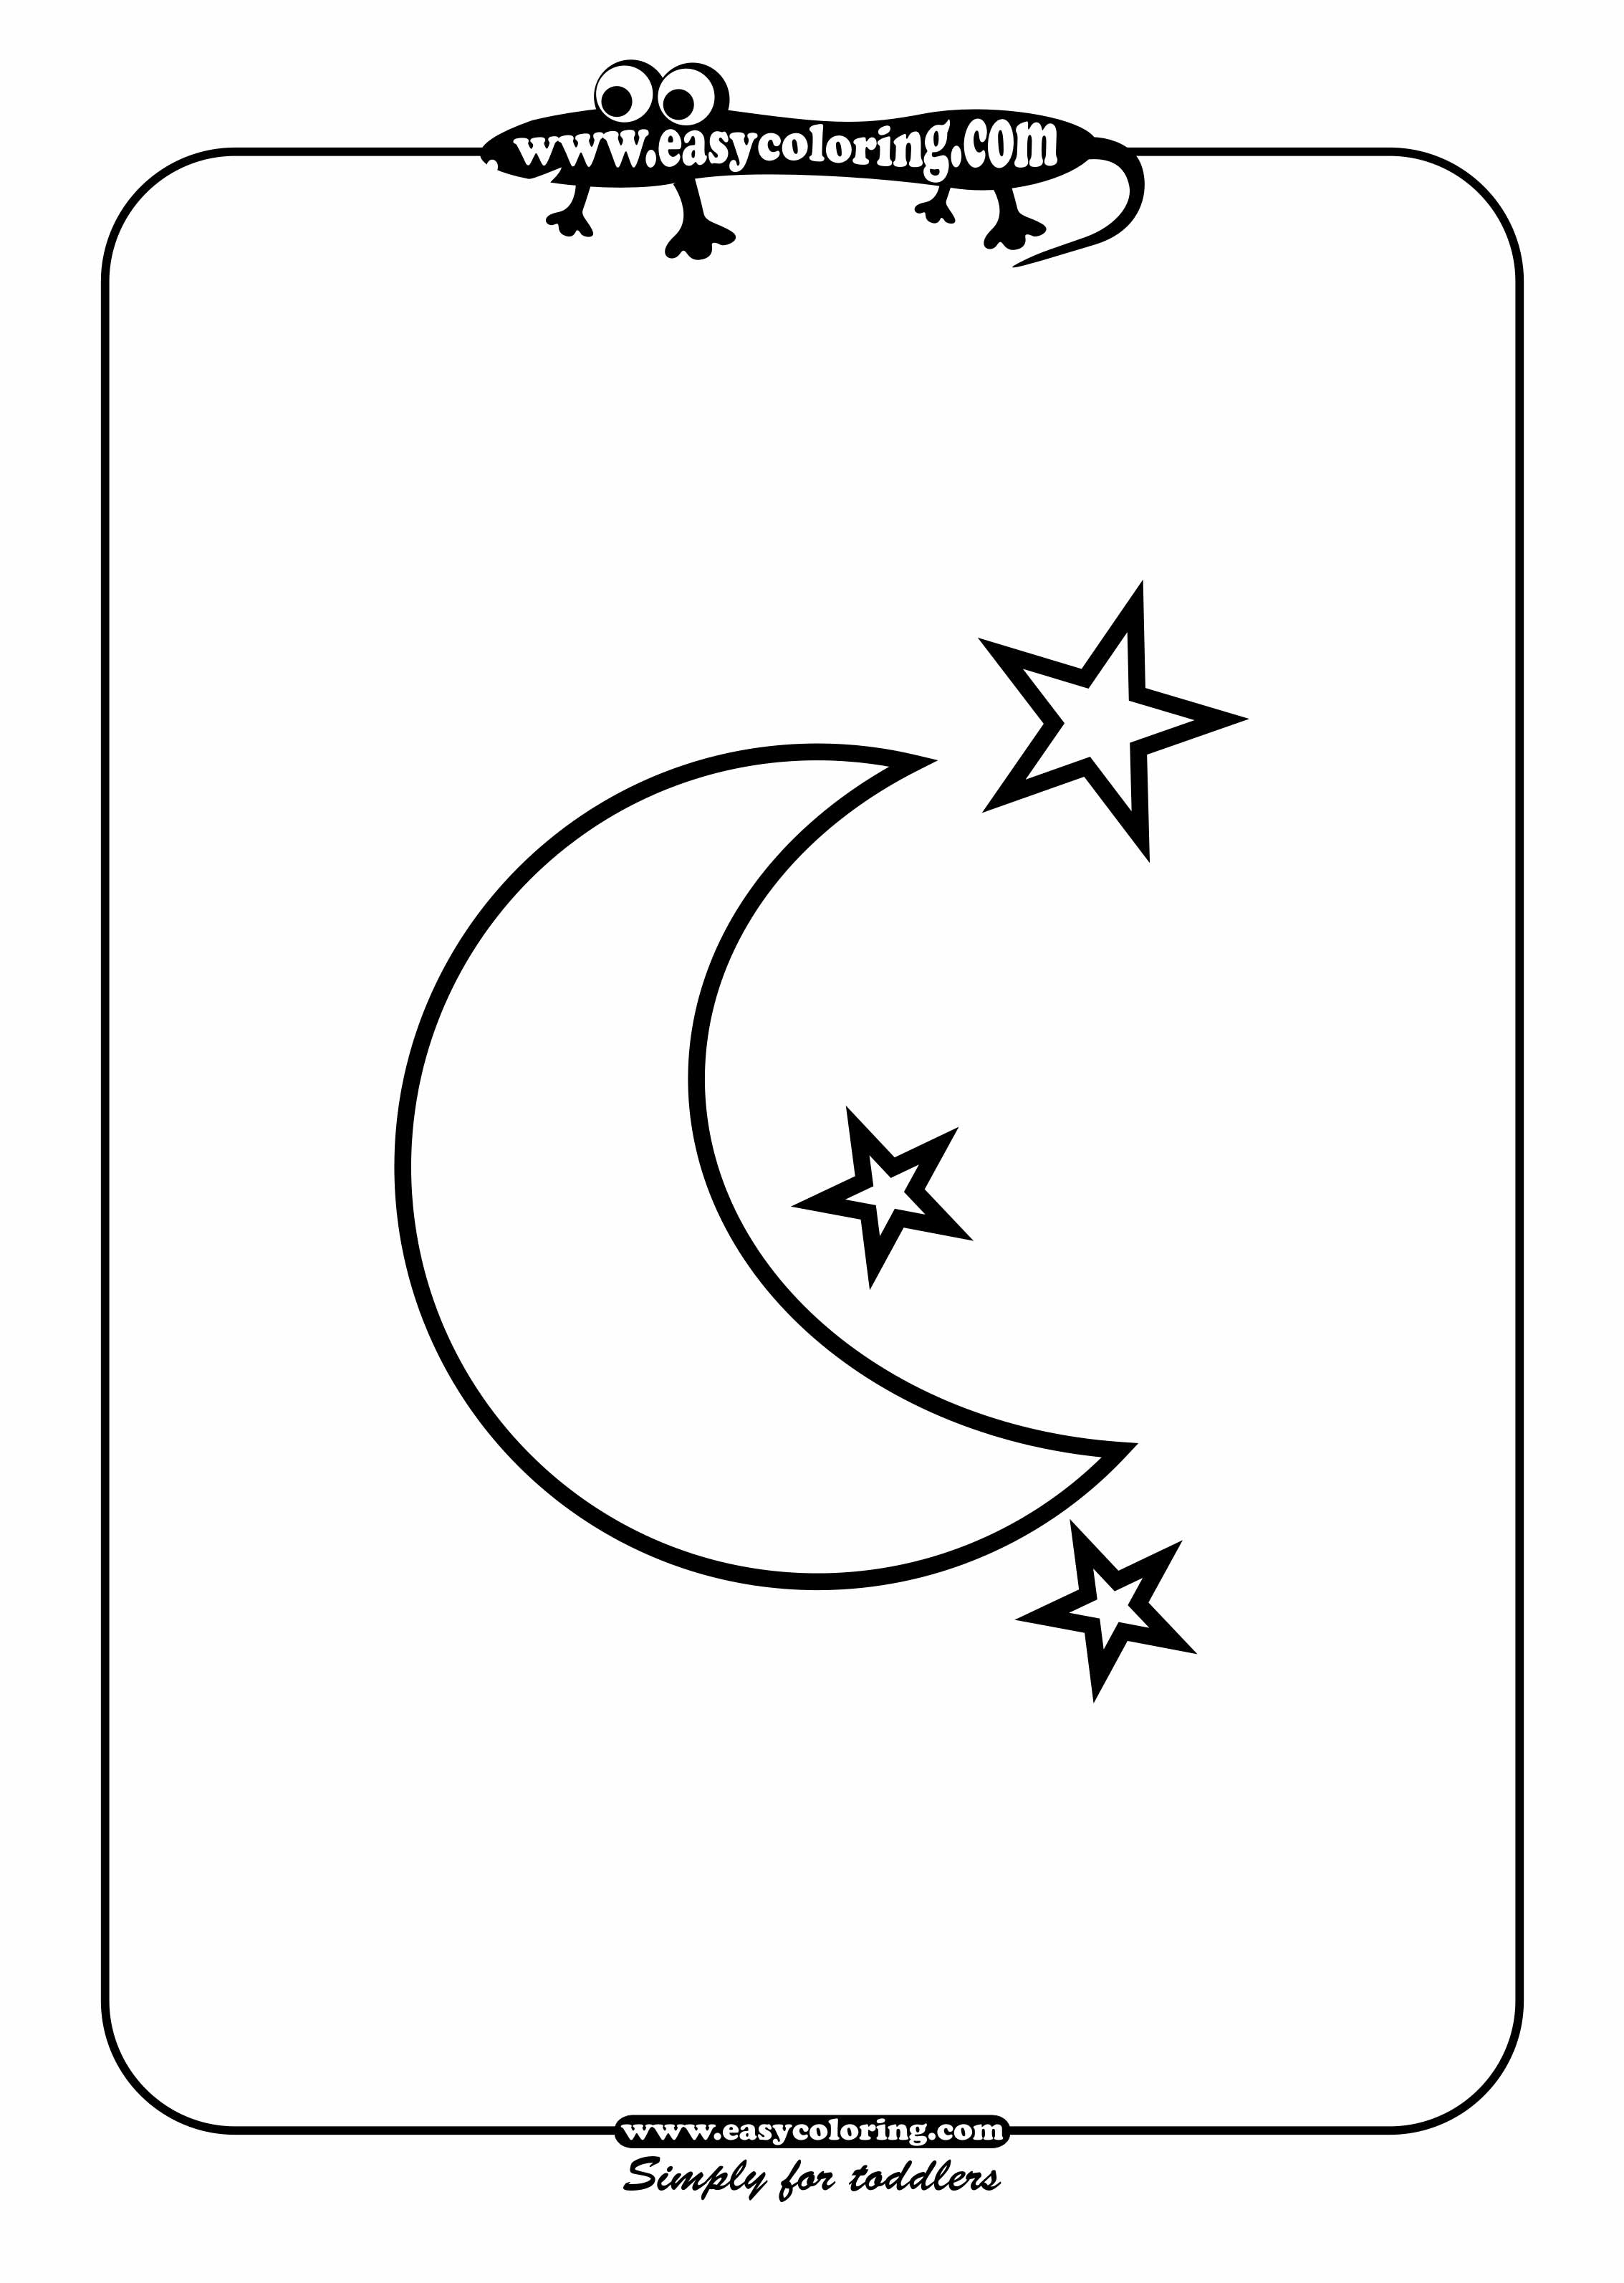 Moon coloring pages for preschoolers - Moon And Stars Easy Coloring Shapes